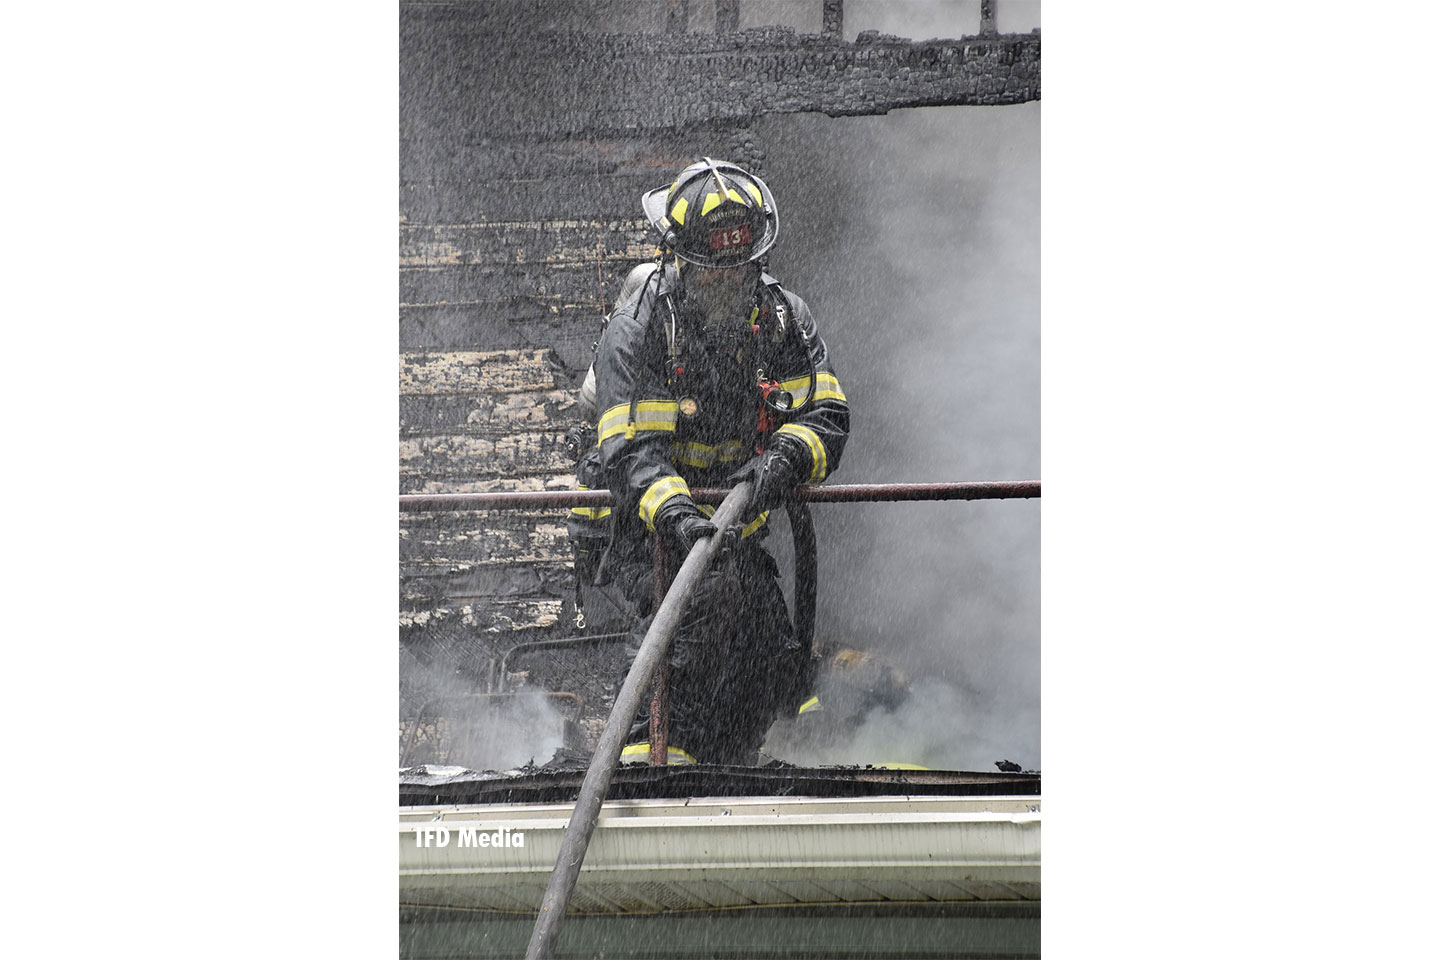 A firefighter hauls a hoseline up onto a roof.